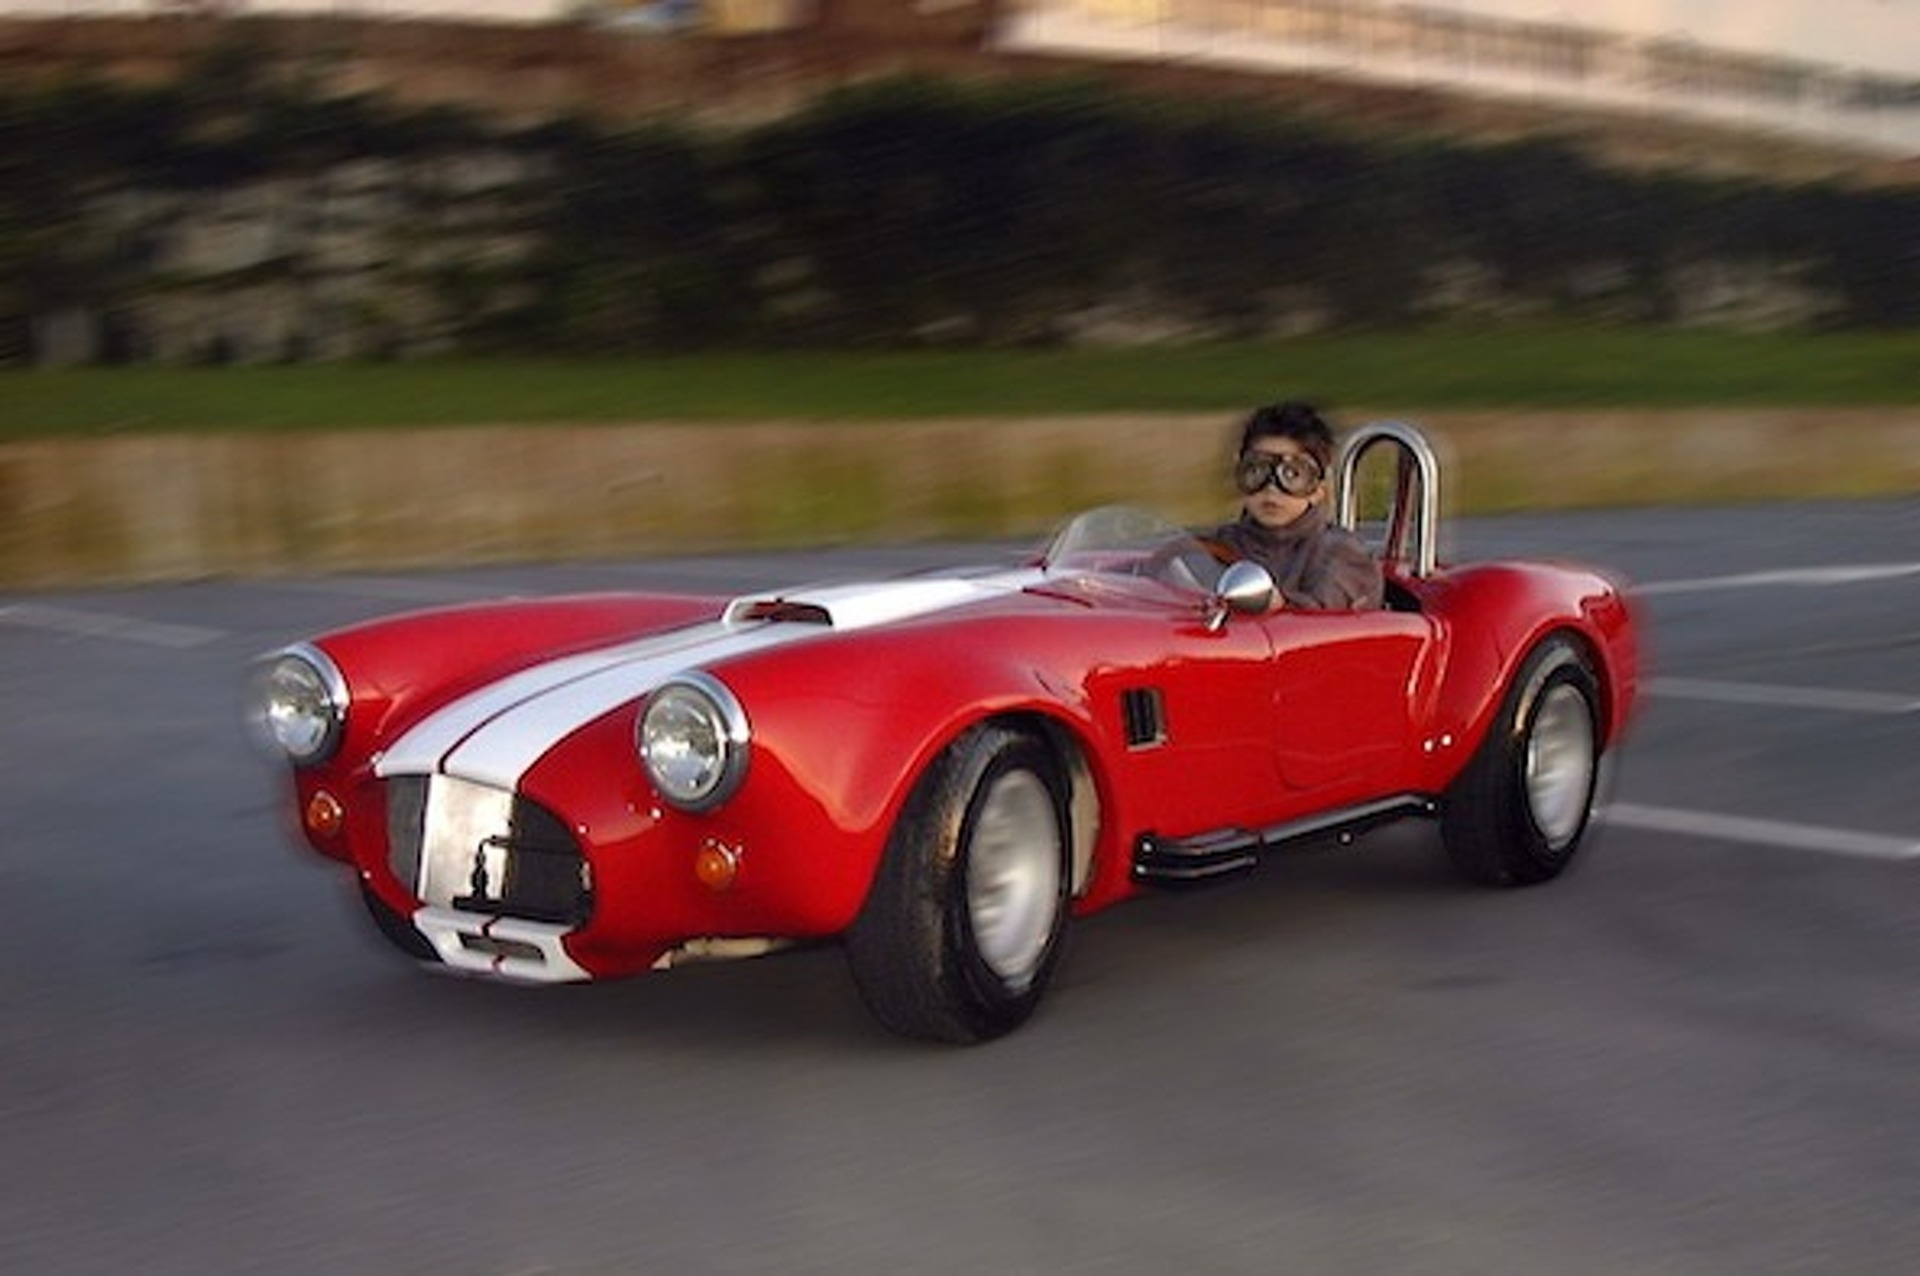 Kid-Sized Shelby Cobra Comes with 7 Horsepower and Swag for Days